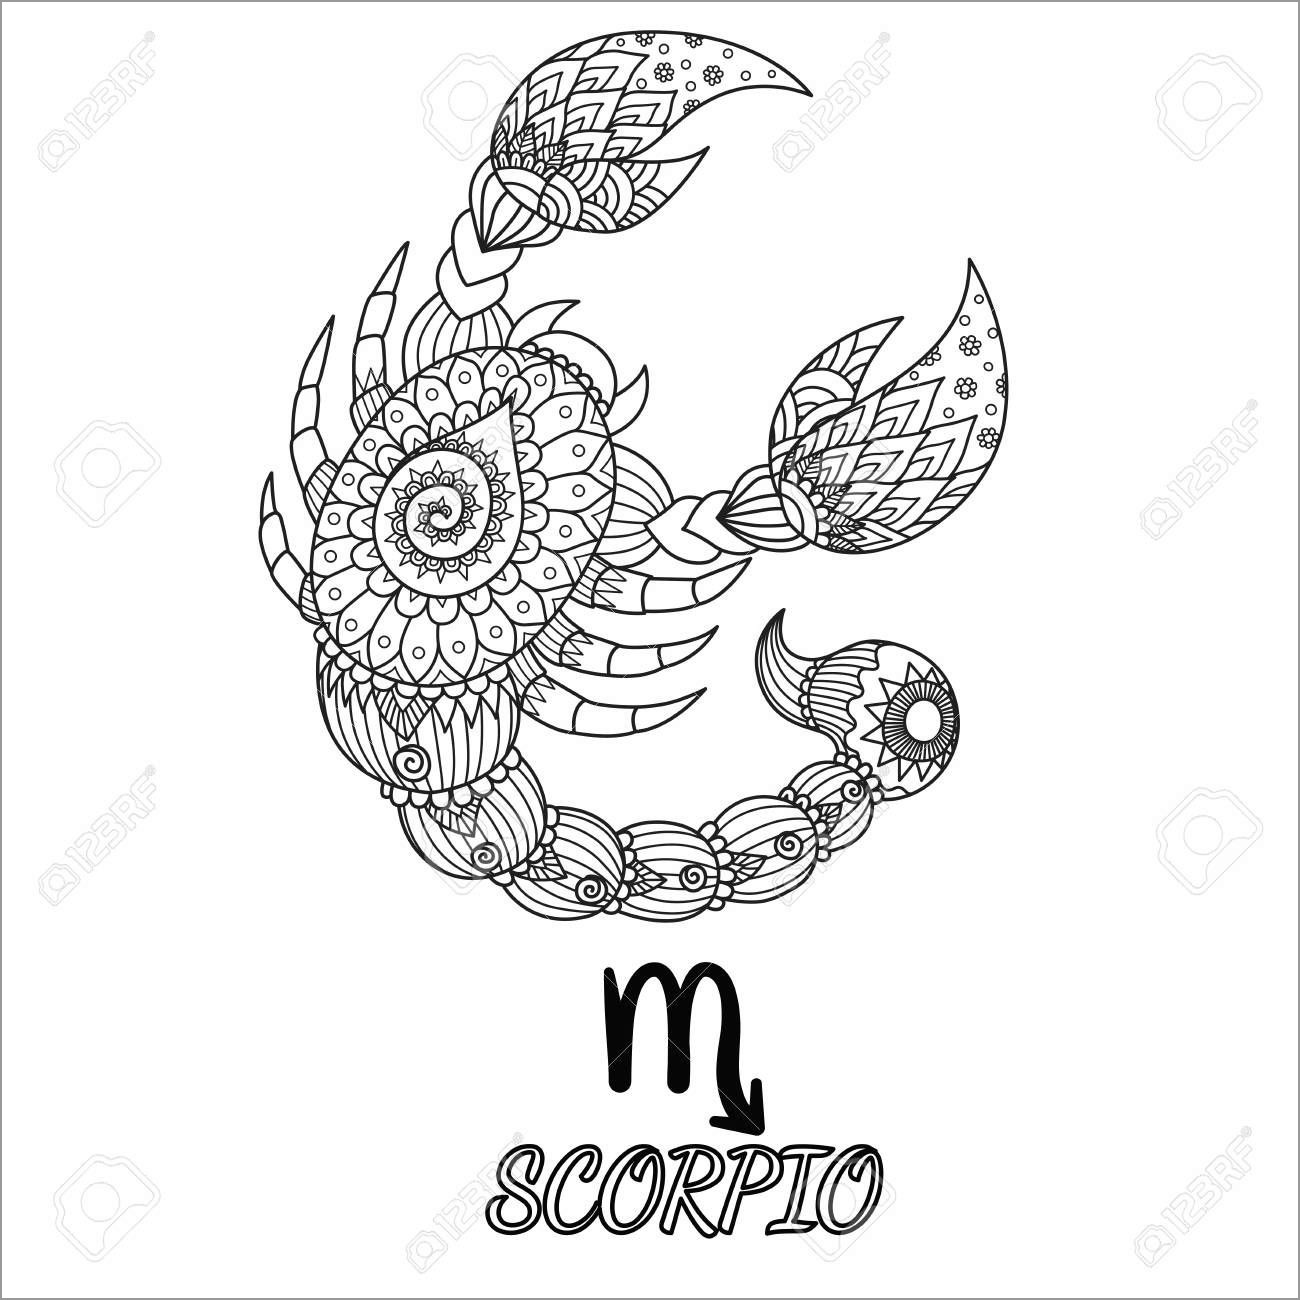 Zentangle Scorpio Adult Coloring Page